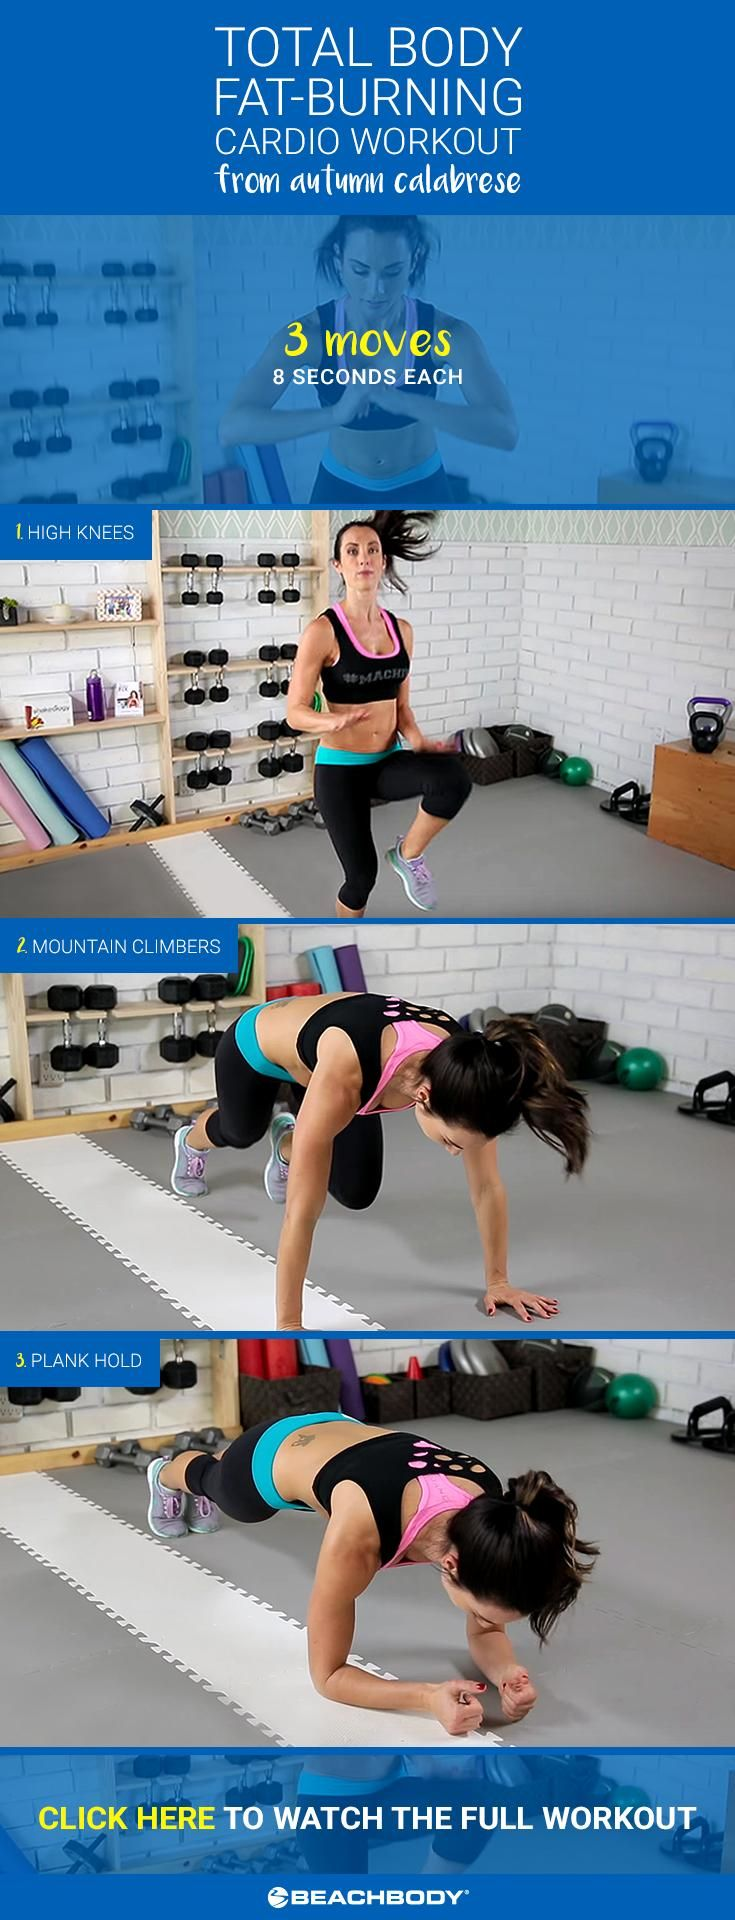 This Total Body Fat Burning Cardio Workout from Autumn Calabrese will work every single muscle and get you sweating in under 7 minutes! Watch the whole video here. // Beachbody // BeachbodyBlog.com //  21 Day Fix // 21 Day Fix Extreme // fitness // fitspo // motivation // exercise // Inspiration // fitfam //fixfam // fit // cardio